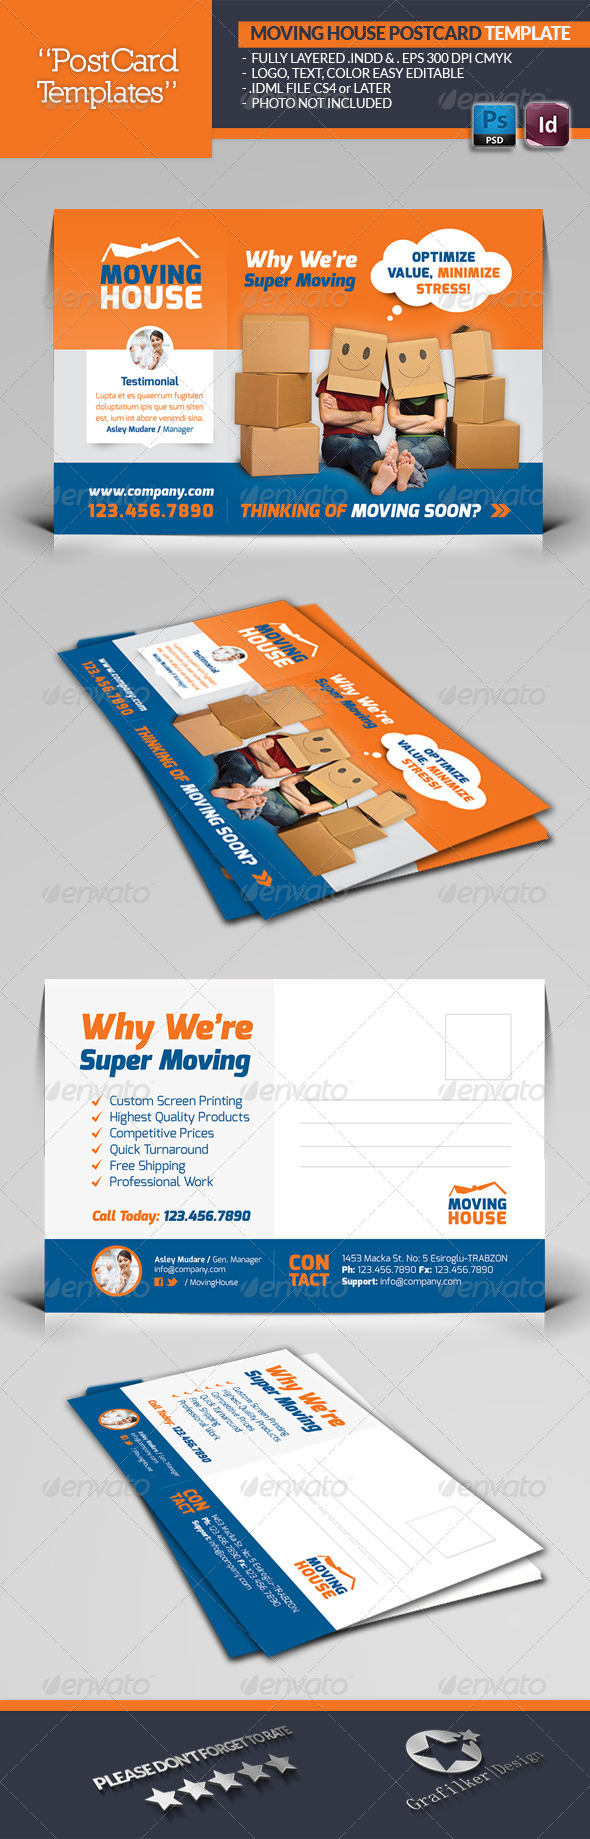 Moving House Postcard Template - Corporate Flyers